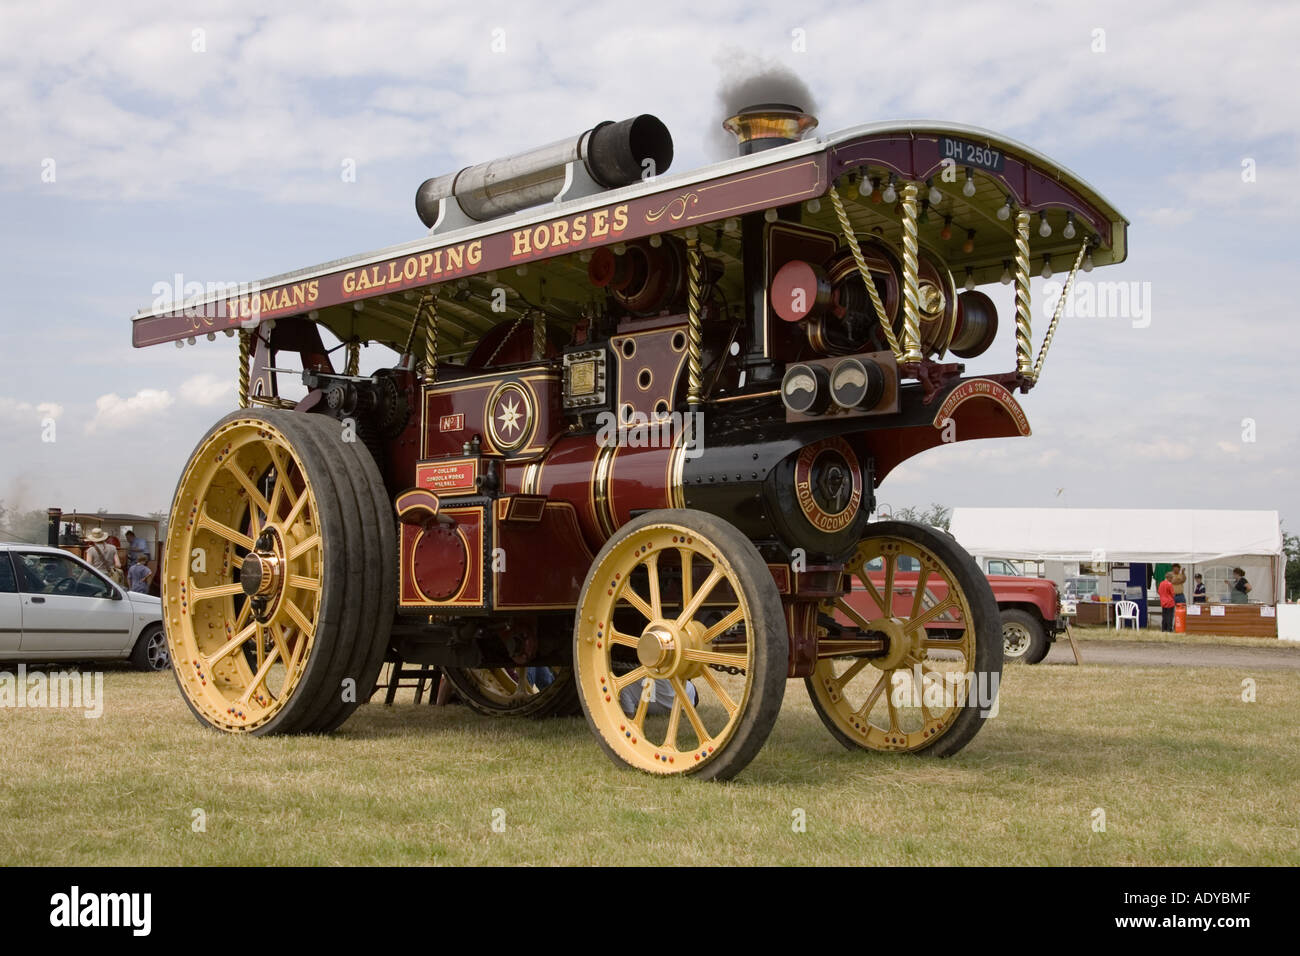 A 1920 Burrell steam traction engine (road locomotive) at Rougham Fair June 2006 - Stock Image